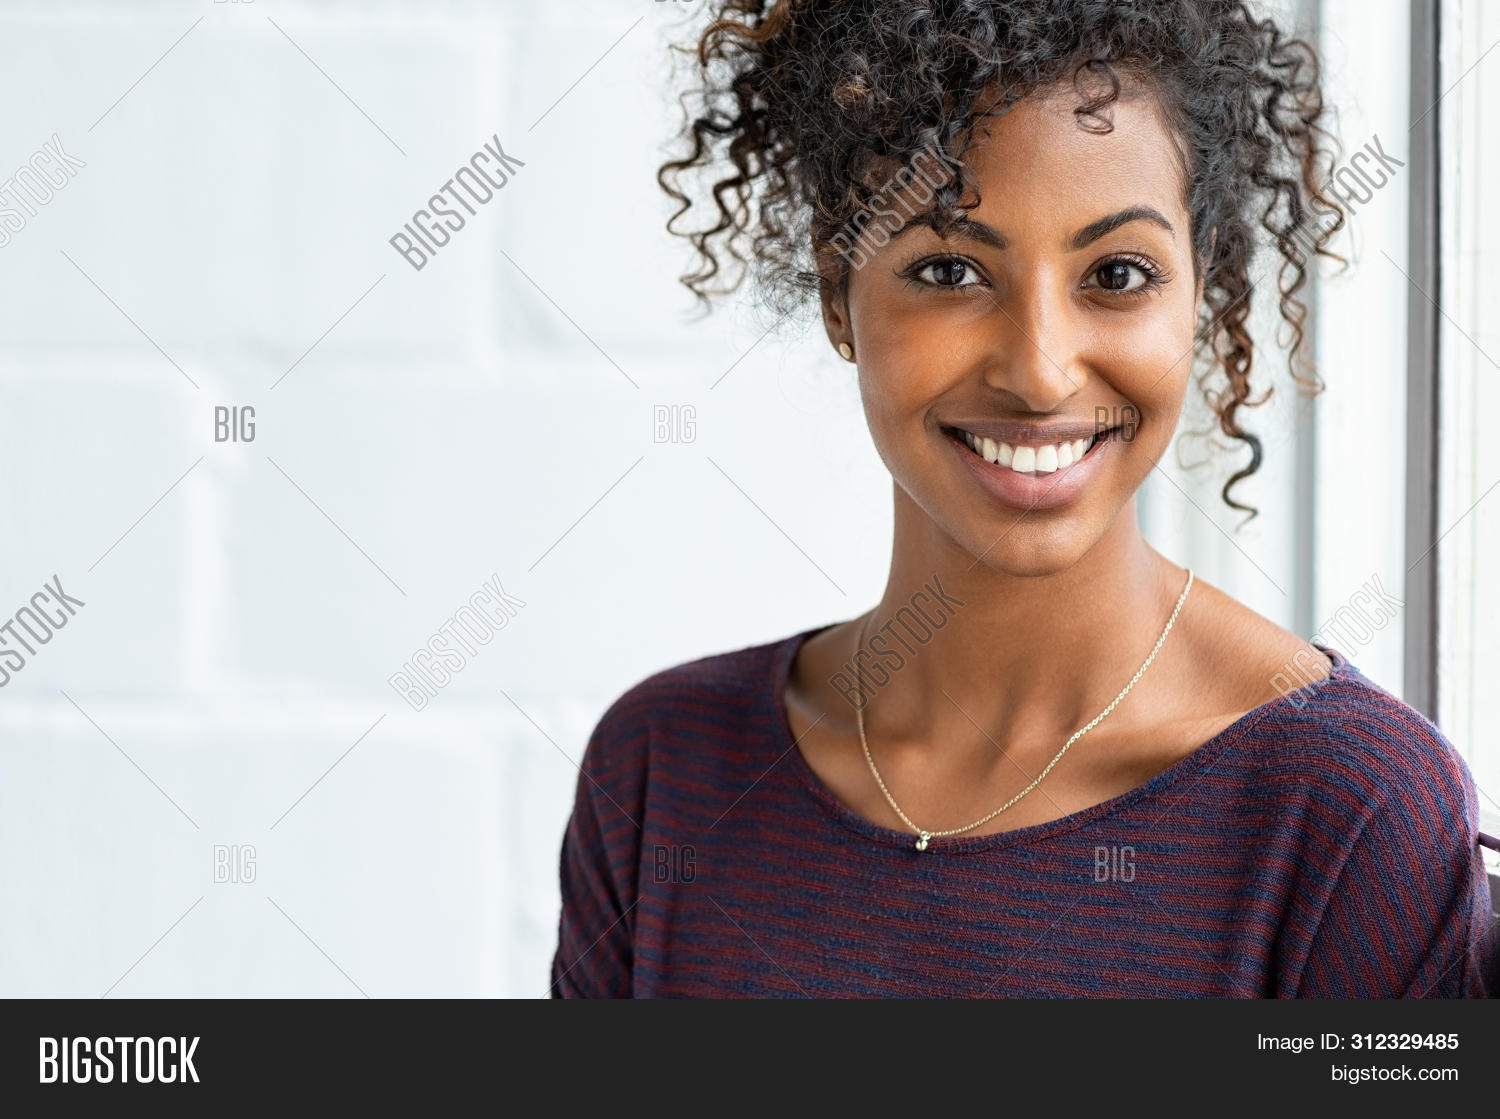 african,african american,afro,afro hair,american,attractive,beautiful,beautiful woman,beauty,black,business,business woman,carefree,casual,casual woman,cheerful,closeup,complexion,confident,copy space,curly,education,expression,face,fun,girl,happy,healthy,home,isolated,joy,looking,looking at camera,natural,natural beauty,near window,people,portrait,positive,pretty,real,real people,relax,smile,style,success,successful,toothy smile,young,young woman